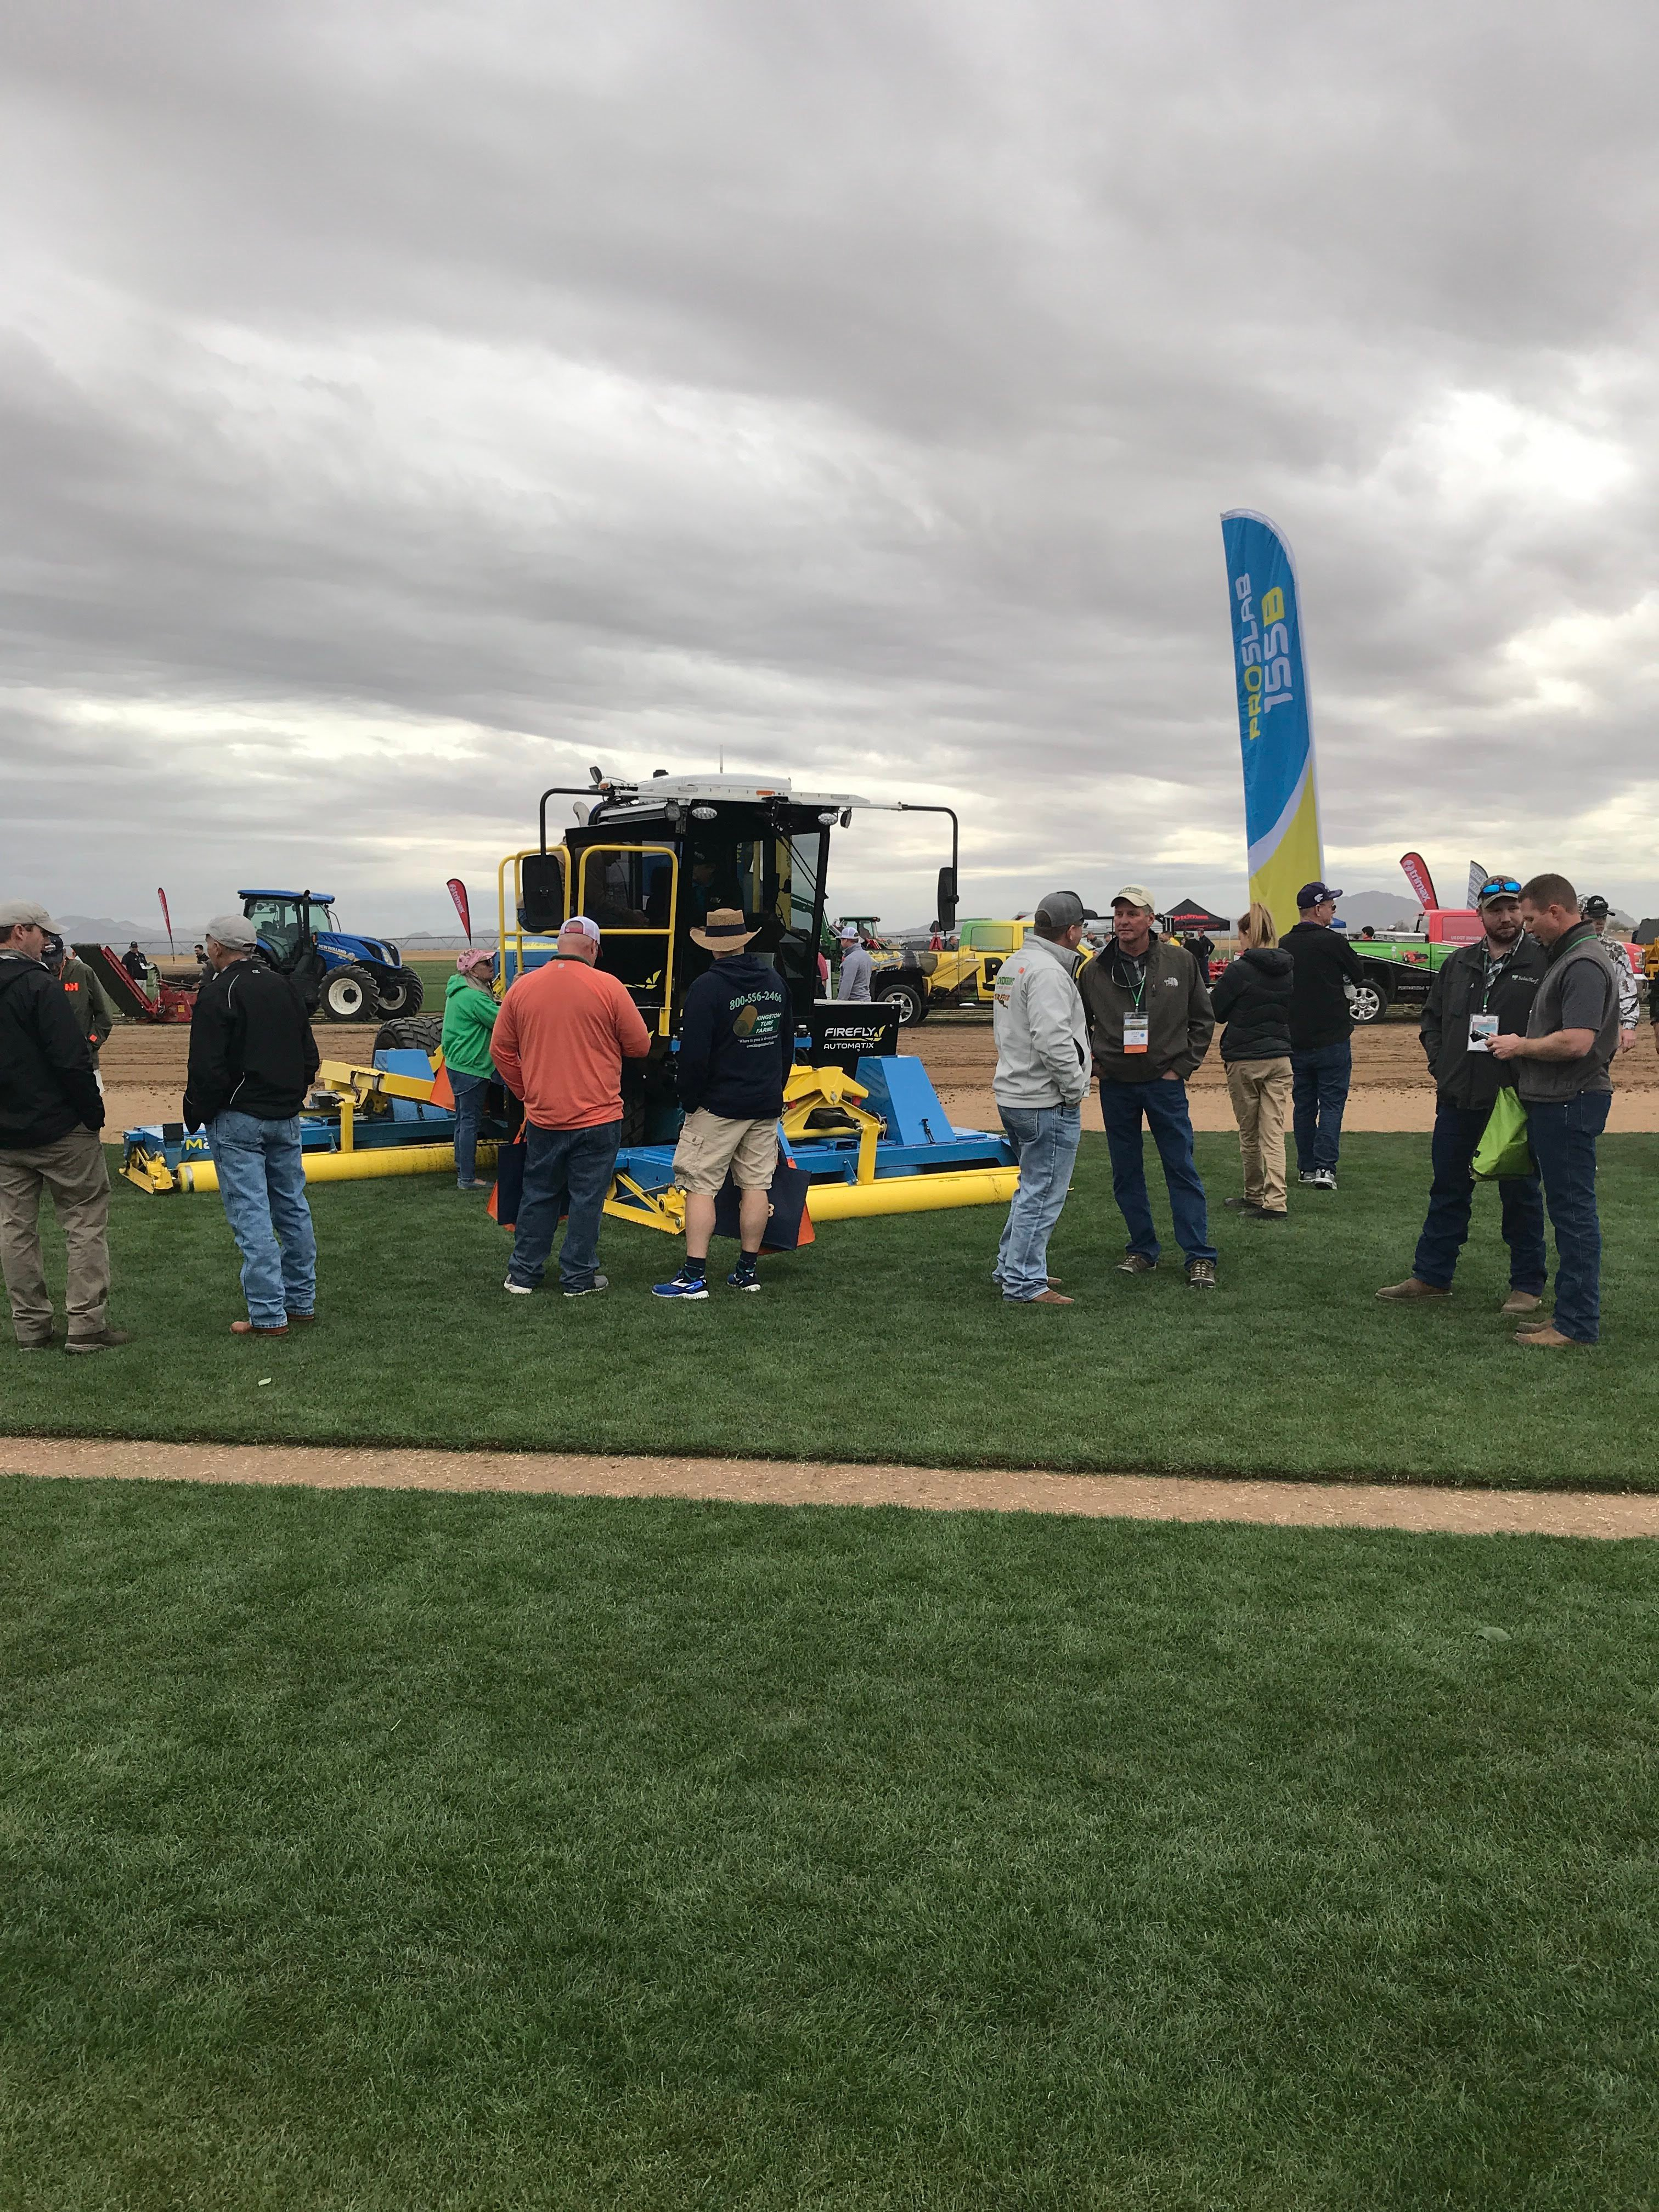 FireFly mower at TPI 2018